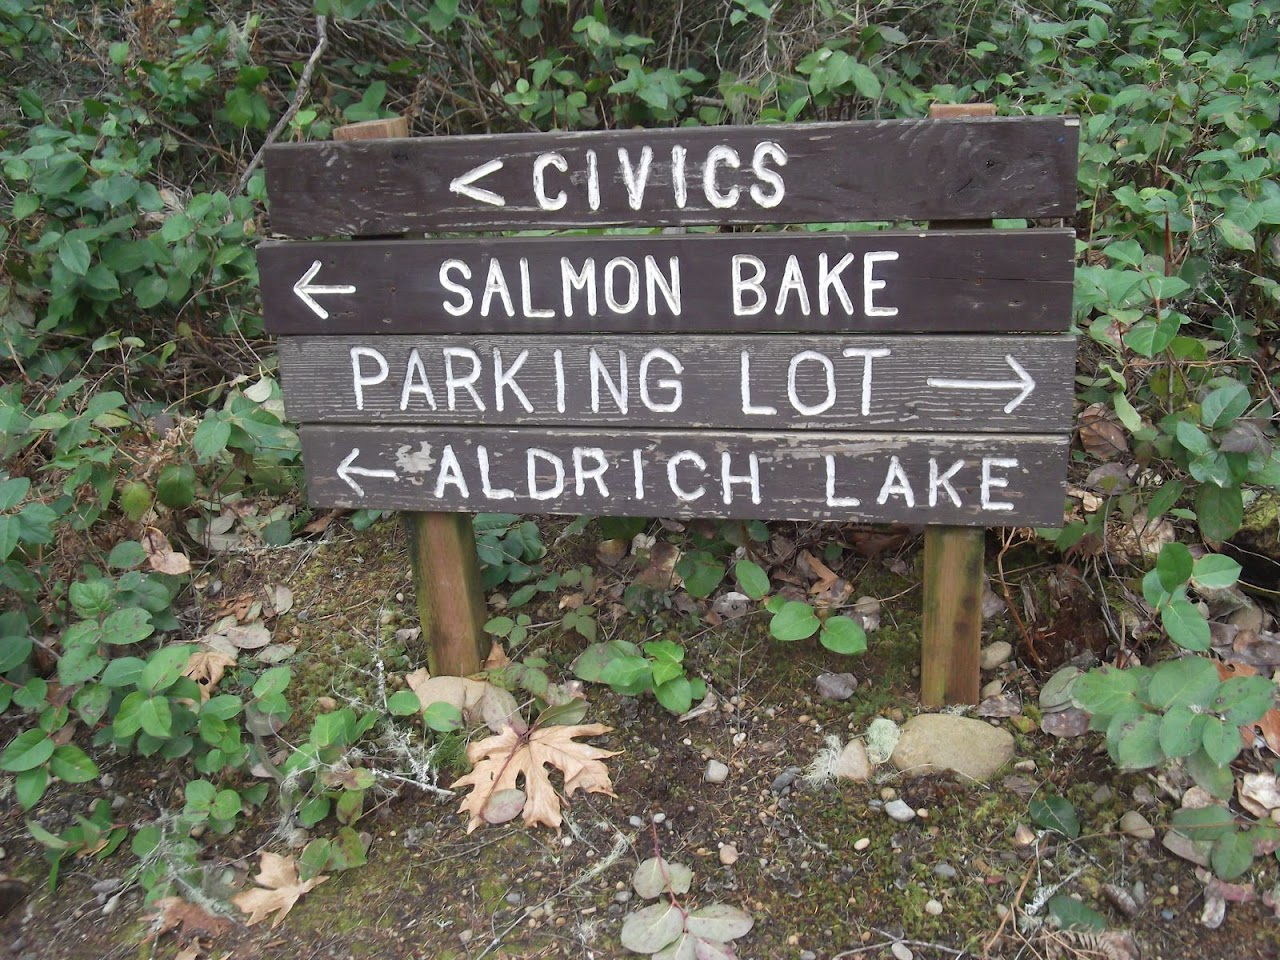 Too many choices......salmon does sound good.